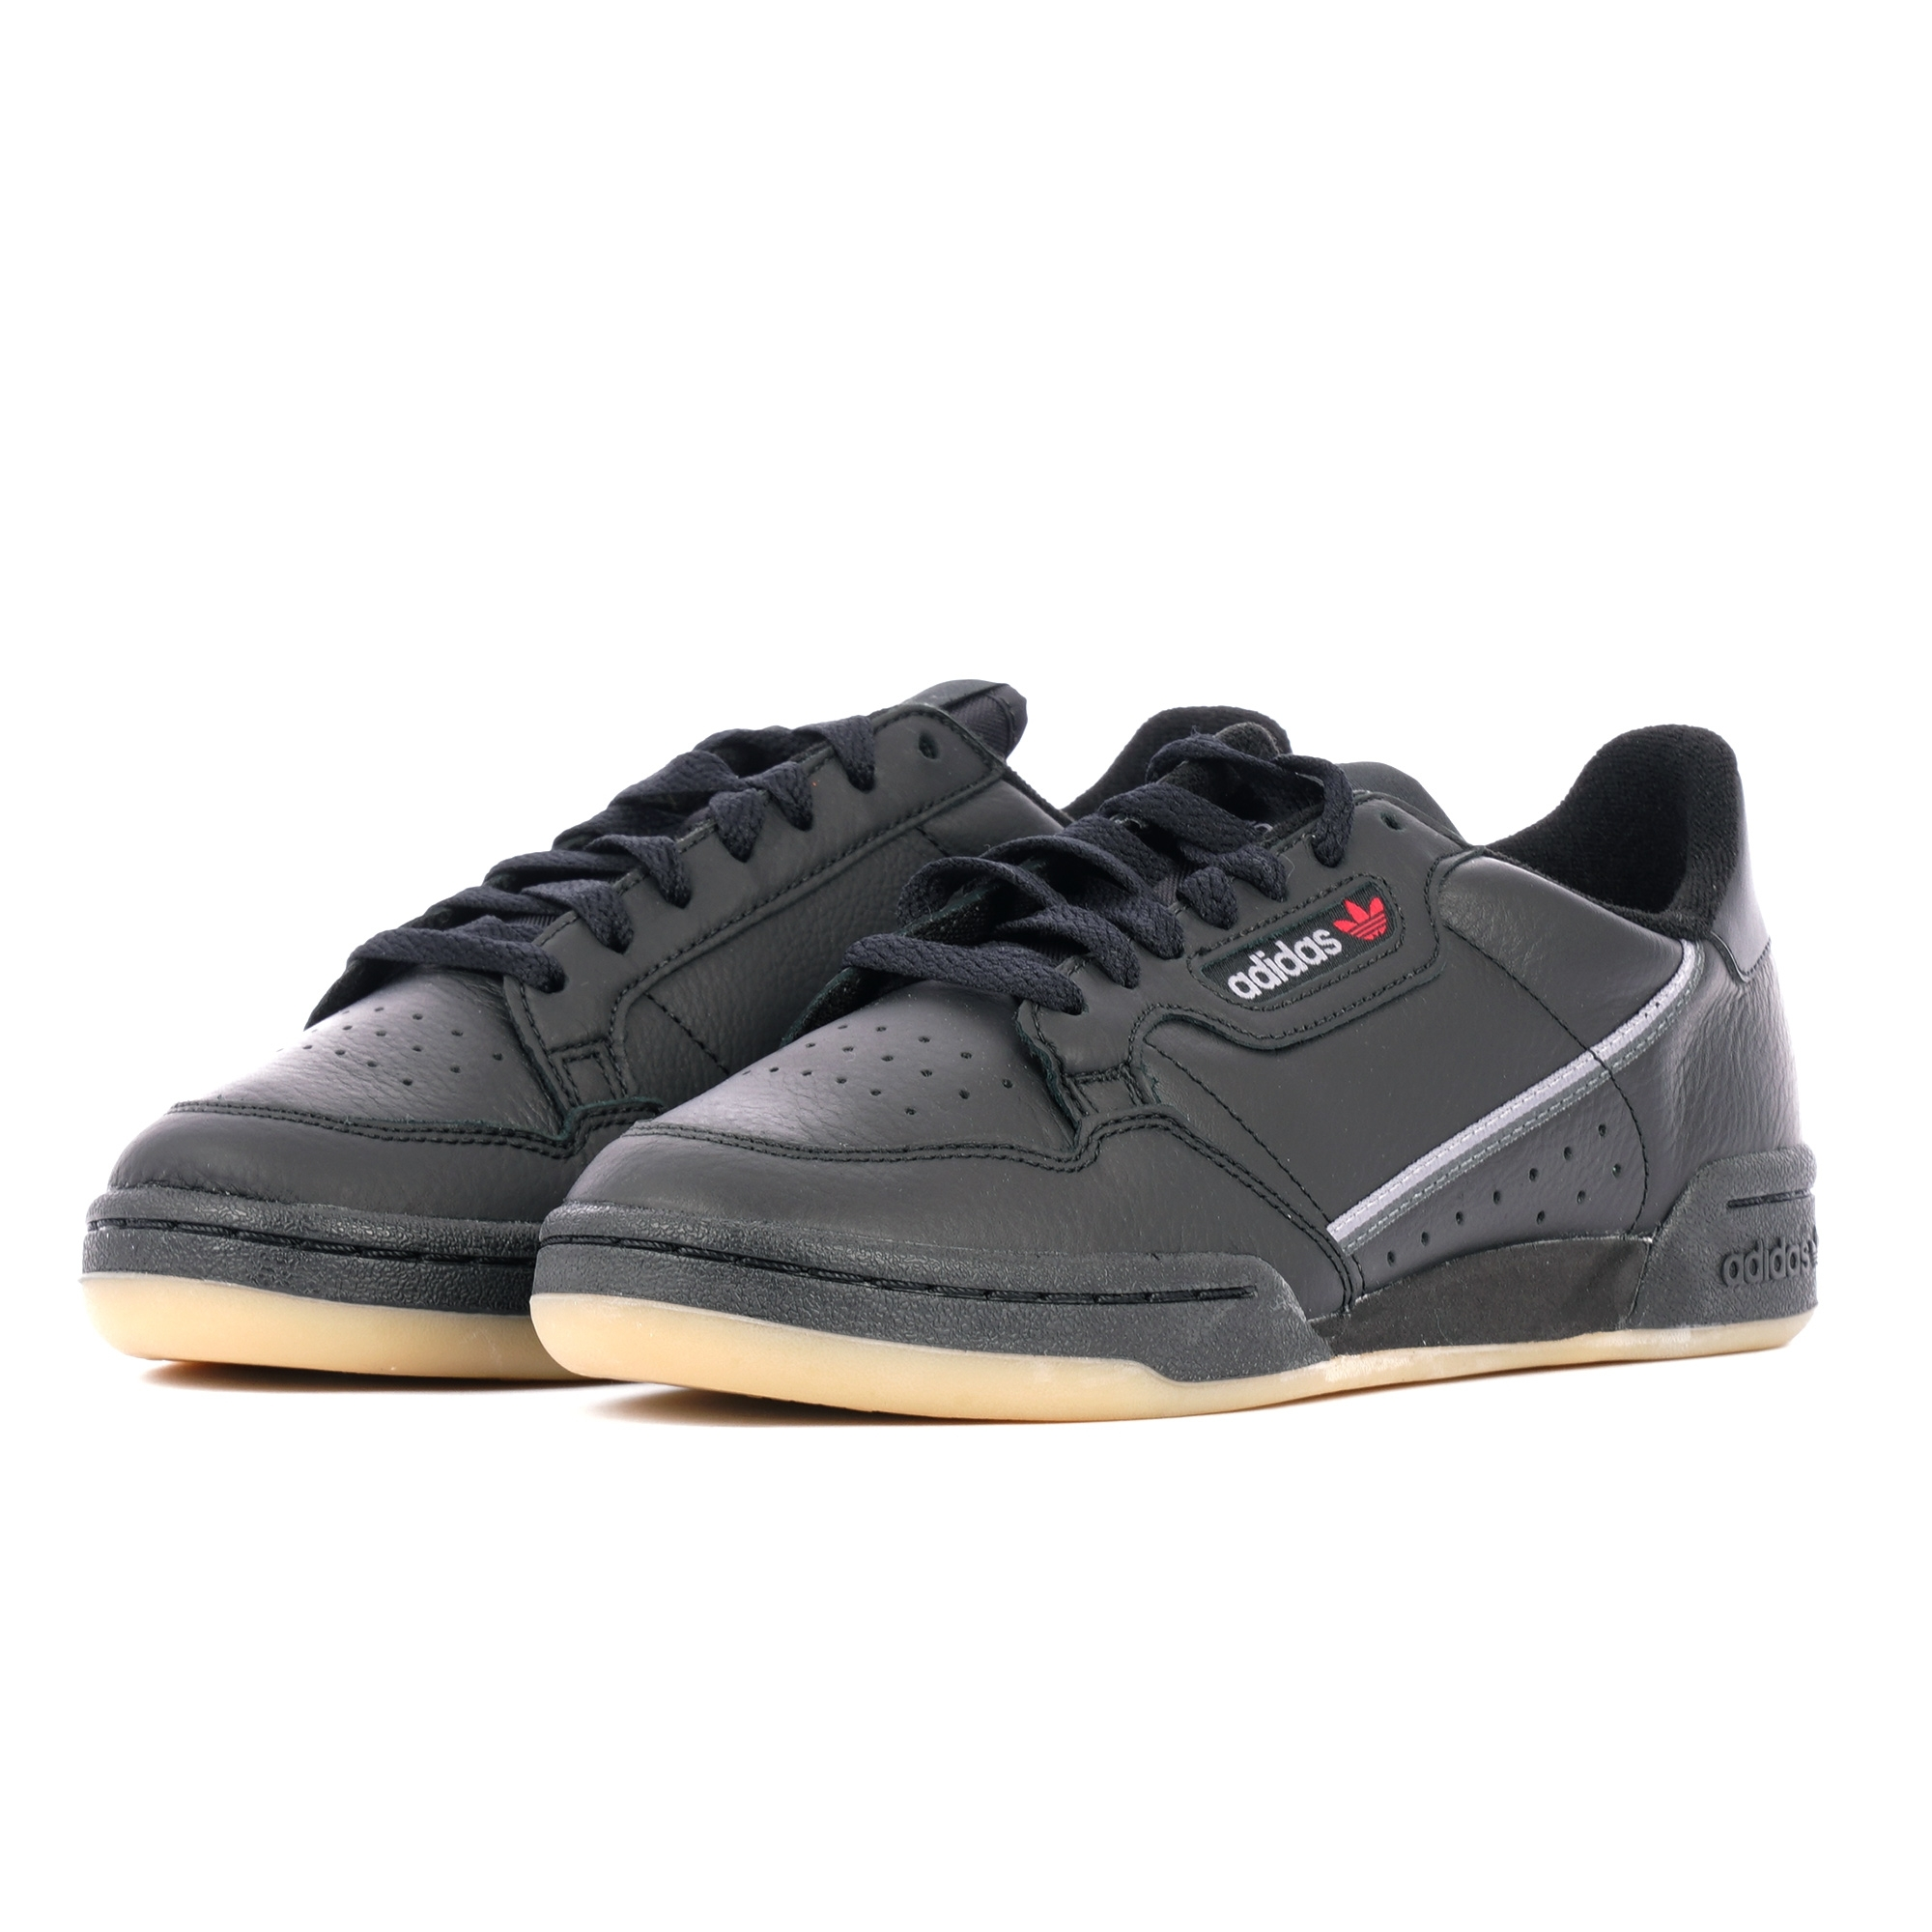 Adidas Originals Continental 80 - Core Black, Grey Three & Gum Three